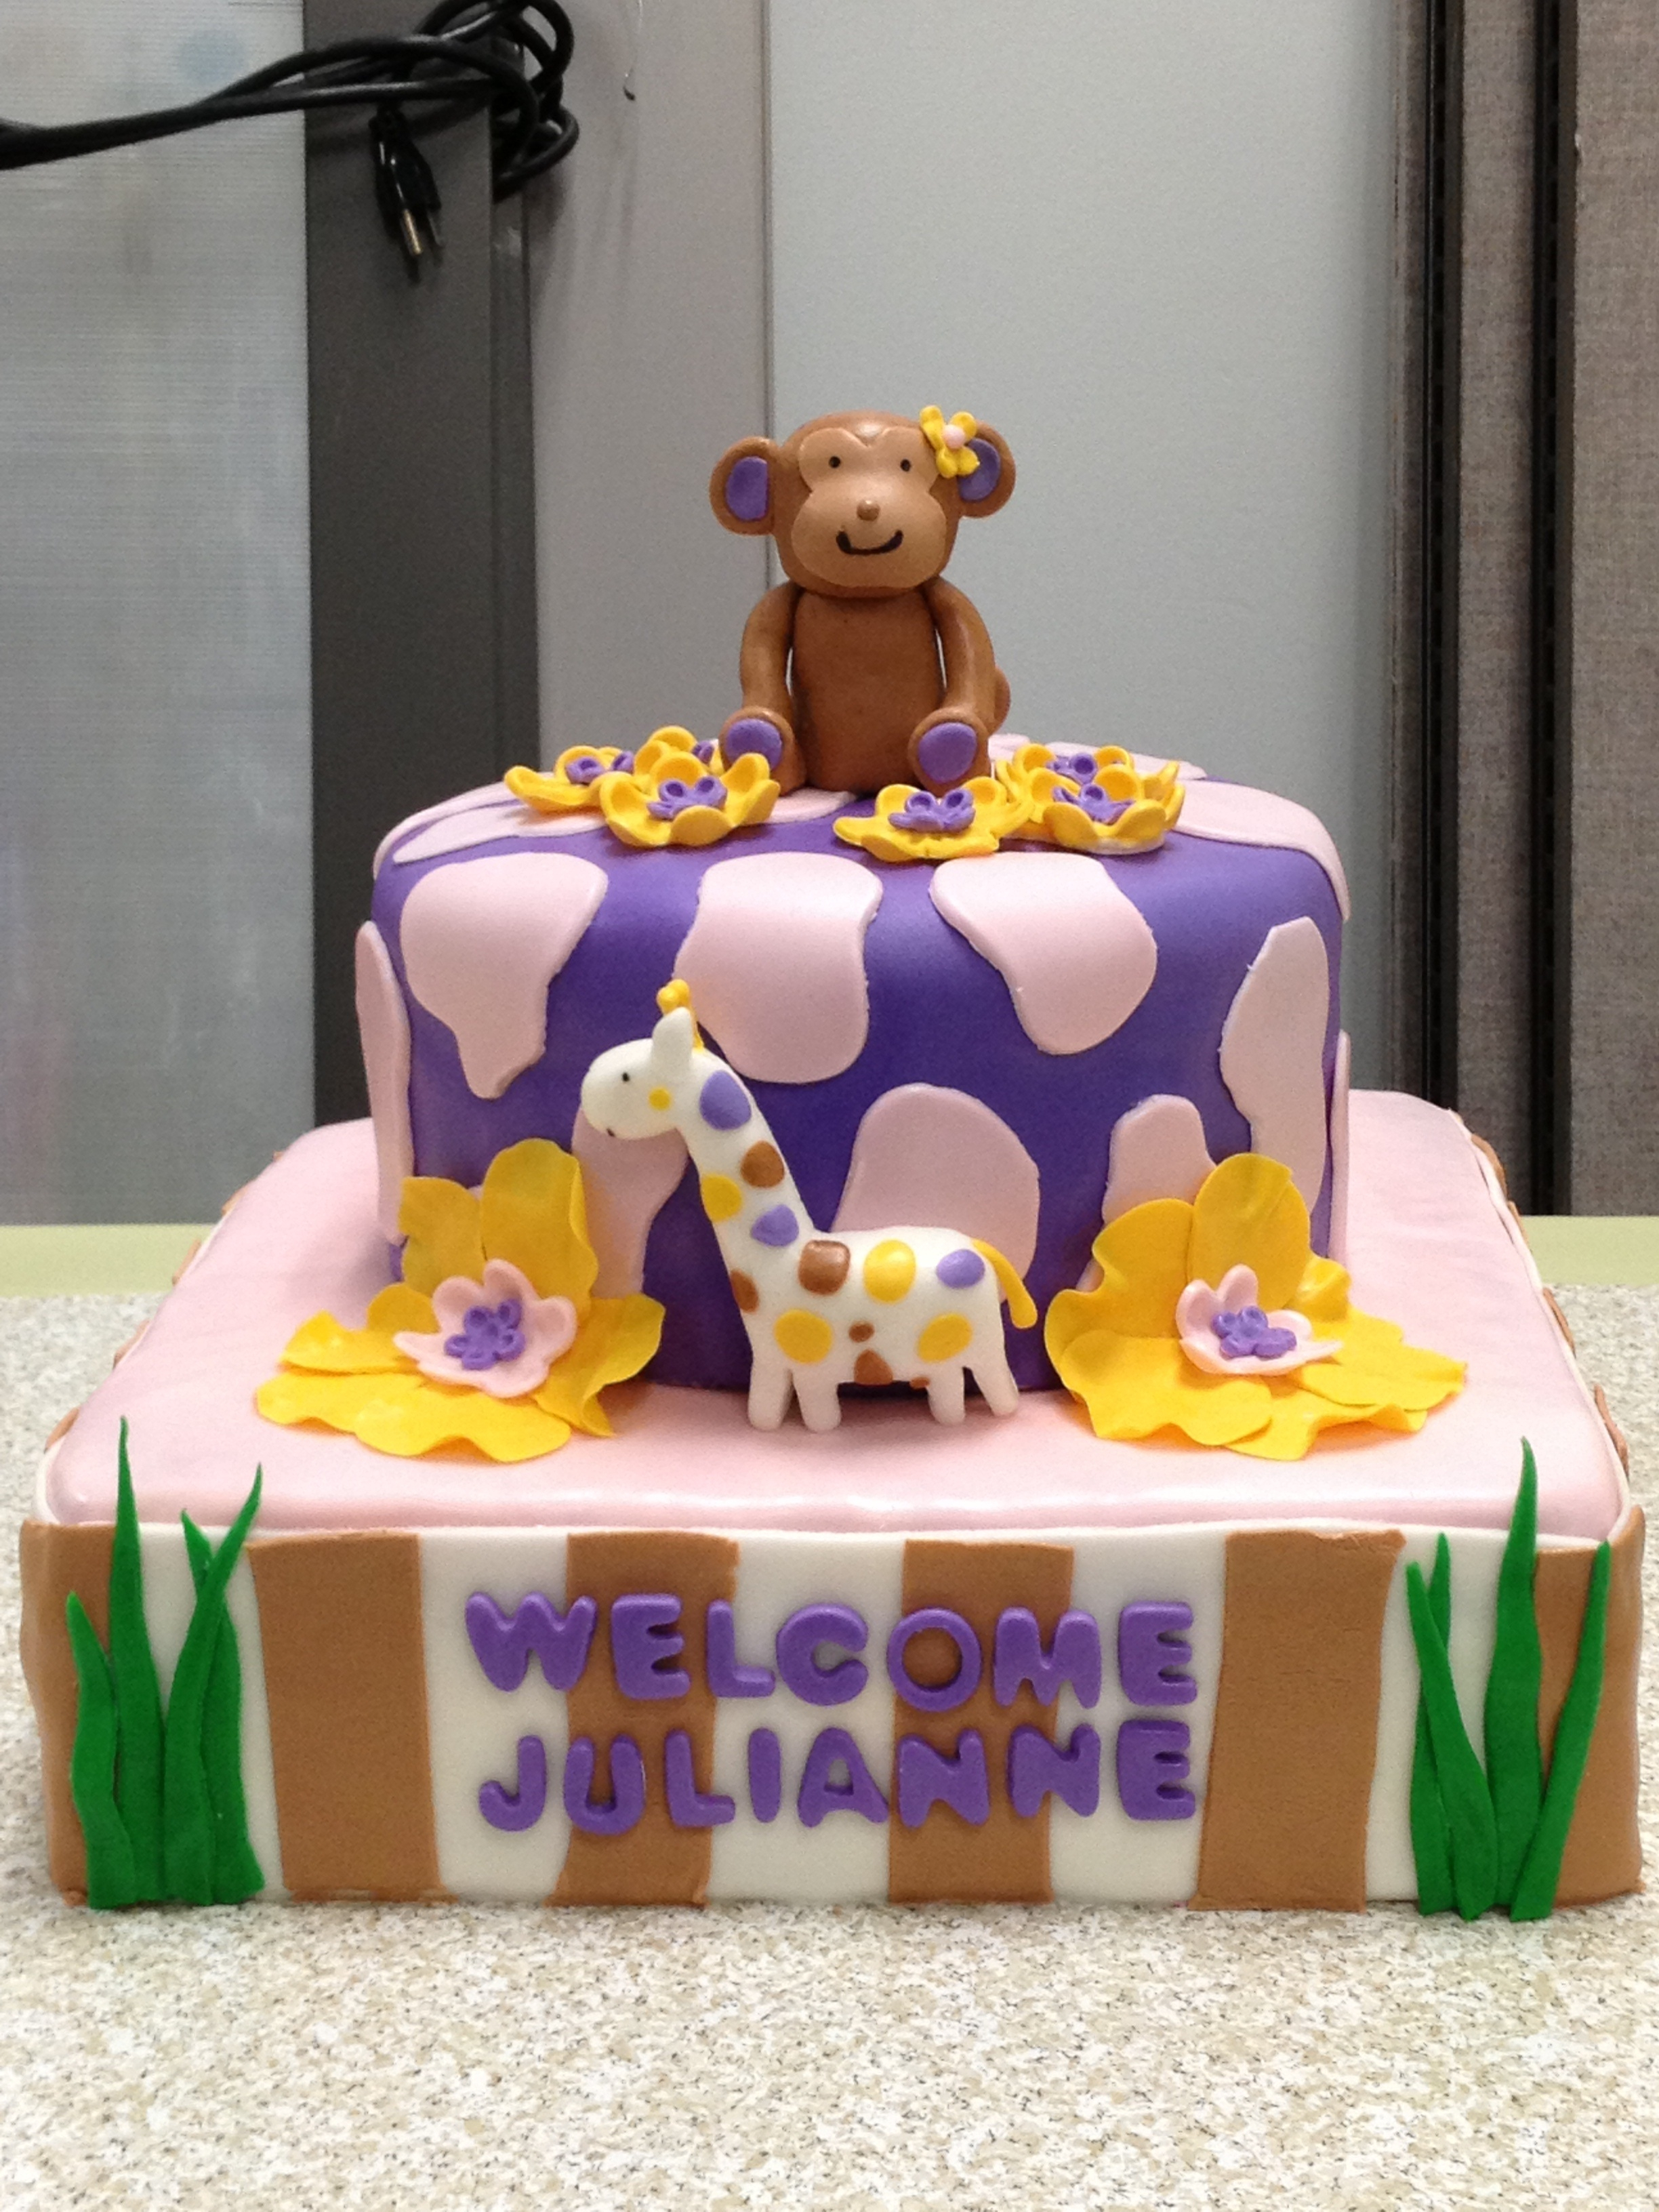 Cocalo Jacana Themed Baby Shower Cake on Cake Central